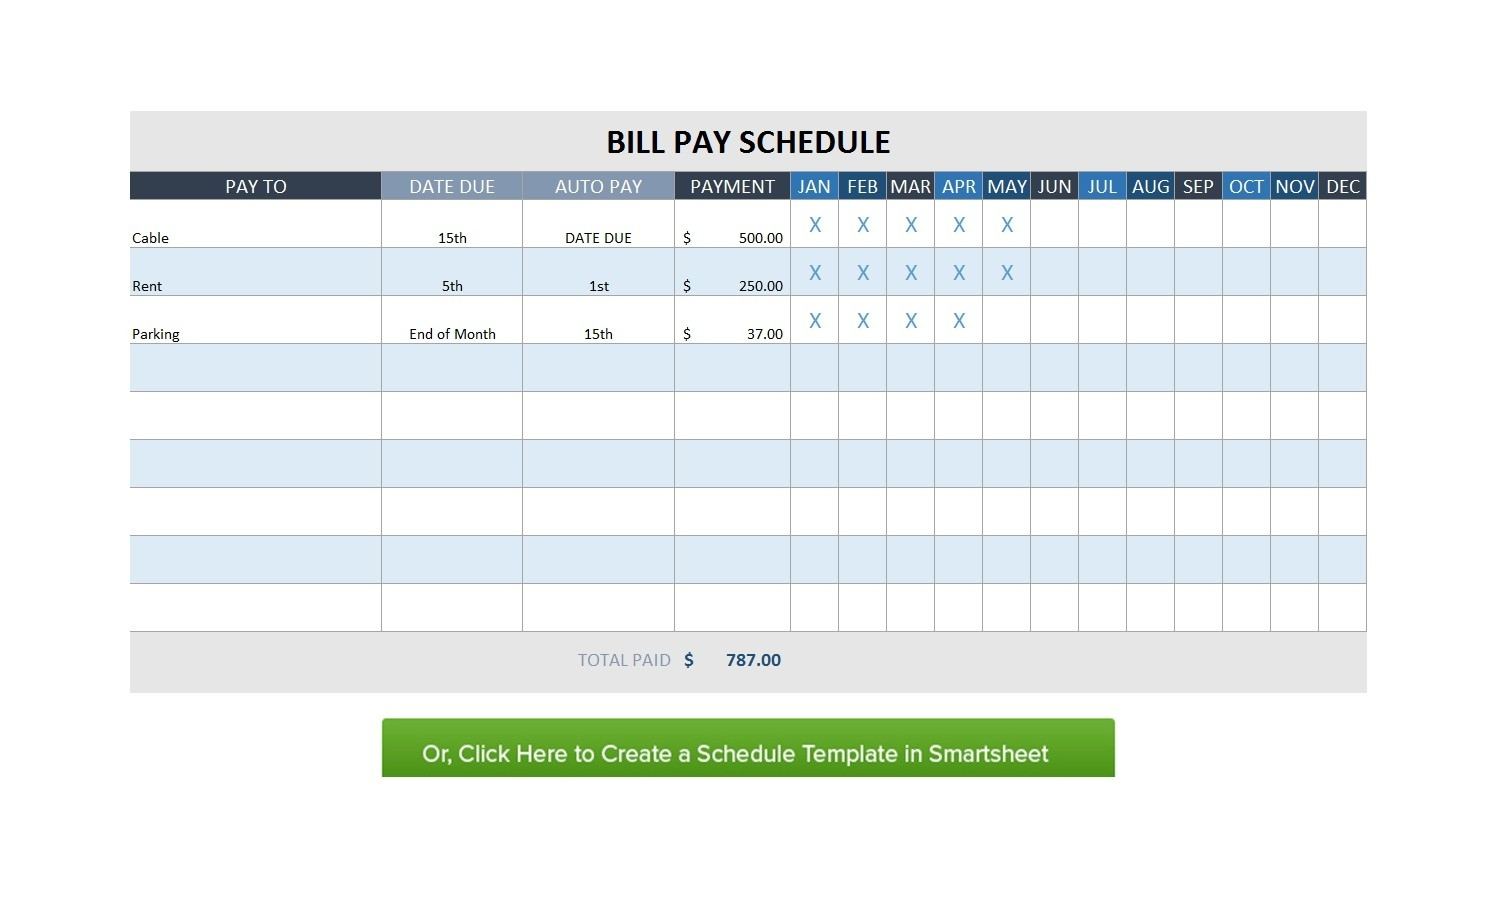 33 Free Bill Pay Checklists & Bill Calendars (Pdf, Word & Excel)  Bill Payment Calendar By Pay Period